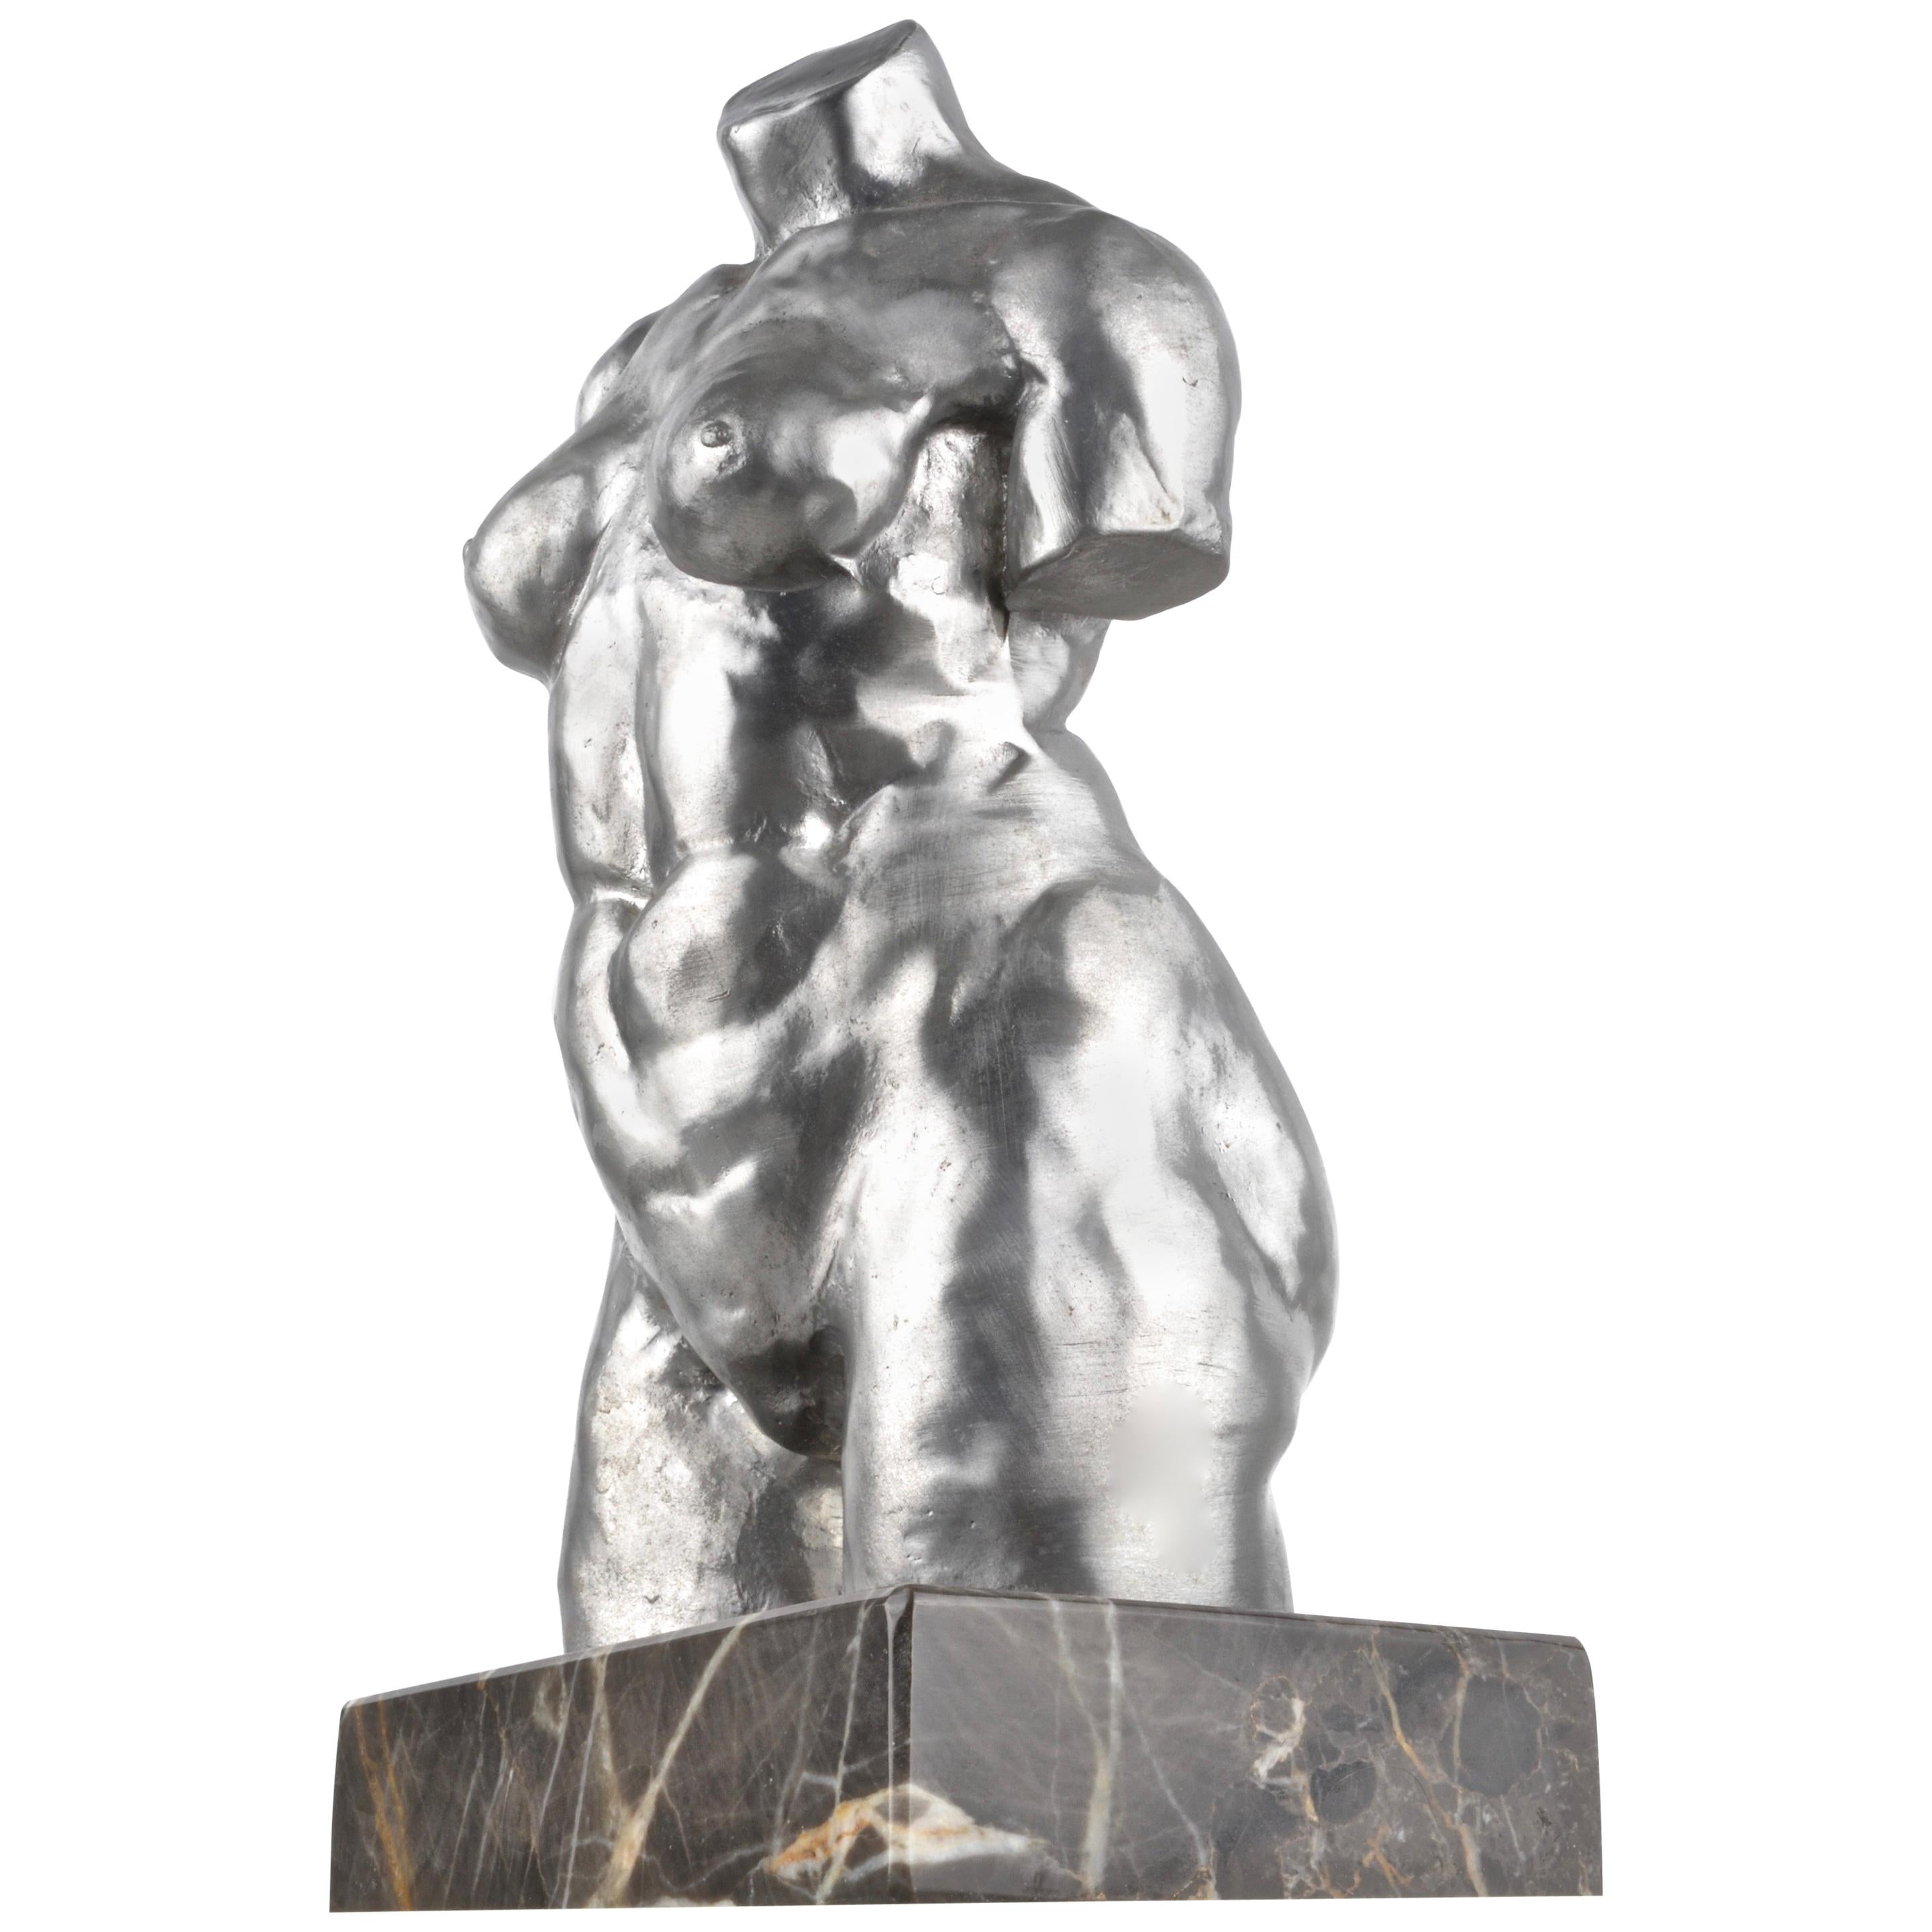 Signed Pewter Sculpture of Female Nude